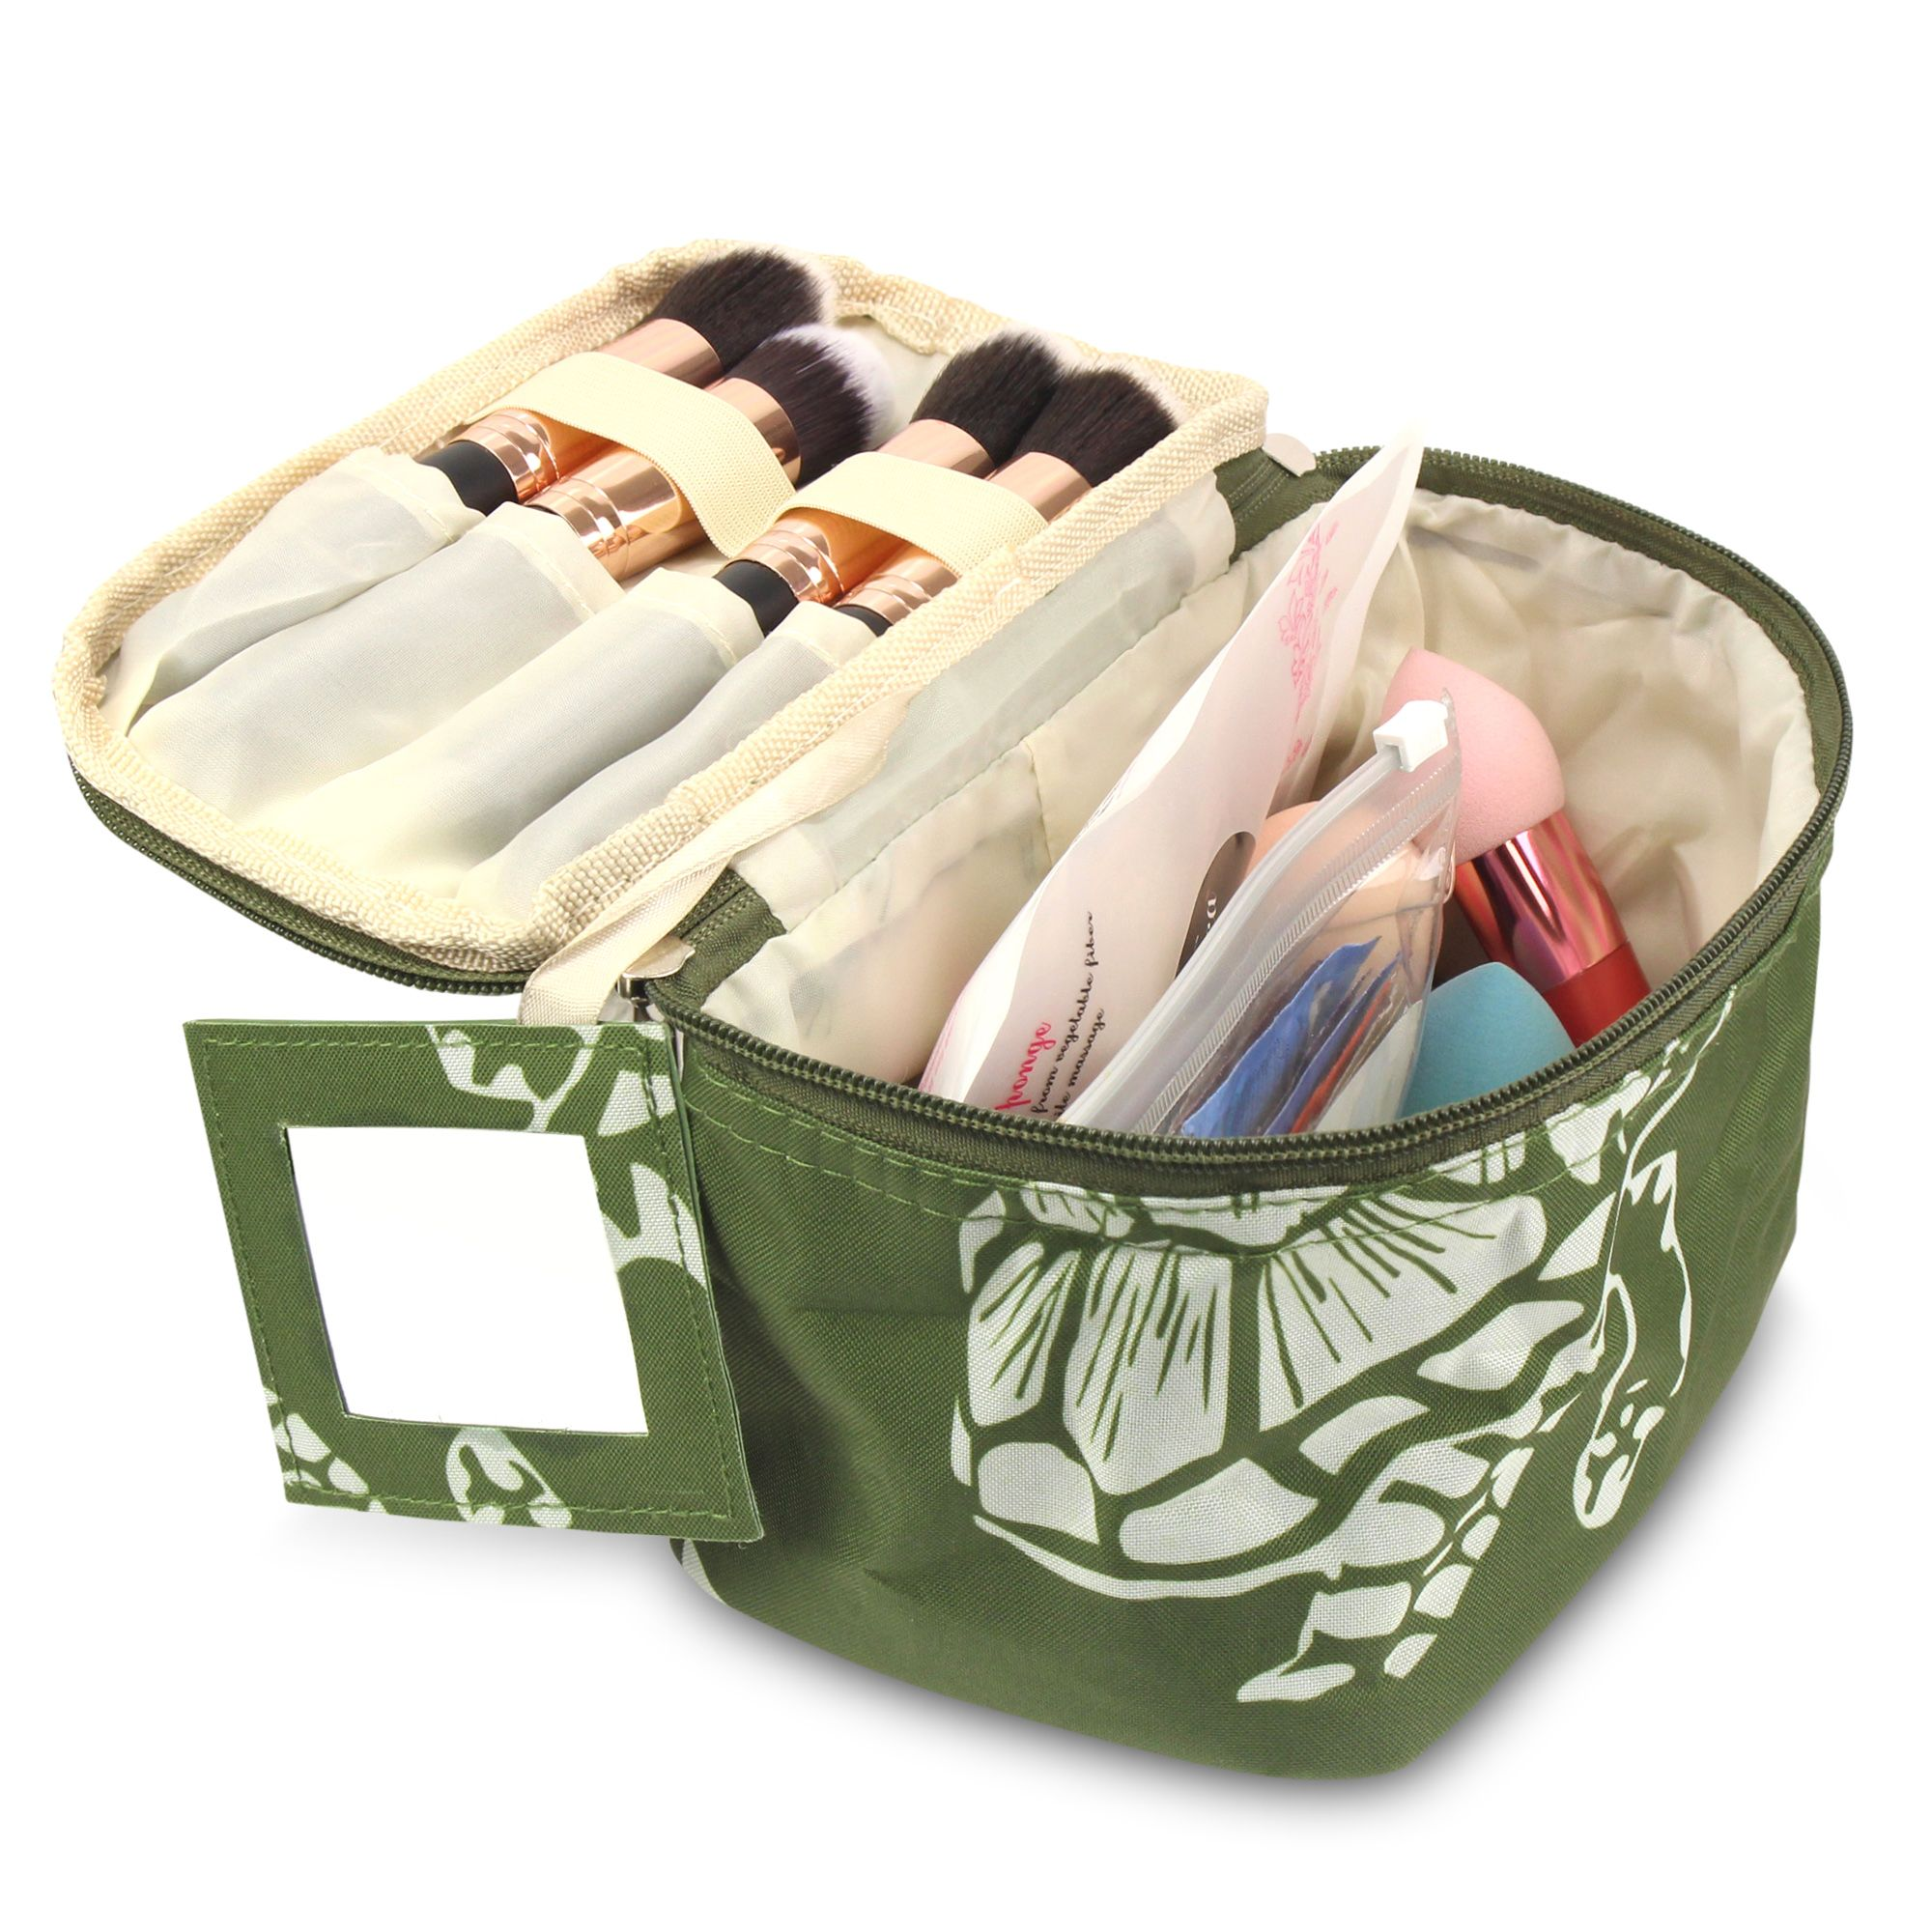 Zodaca Small Travel Cosmetic Makeup Toiletry Organiser Carry Bag Storage Case for Camping Hiking Backpacking w/Mirror